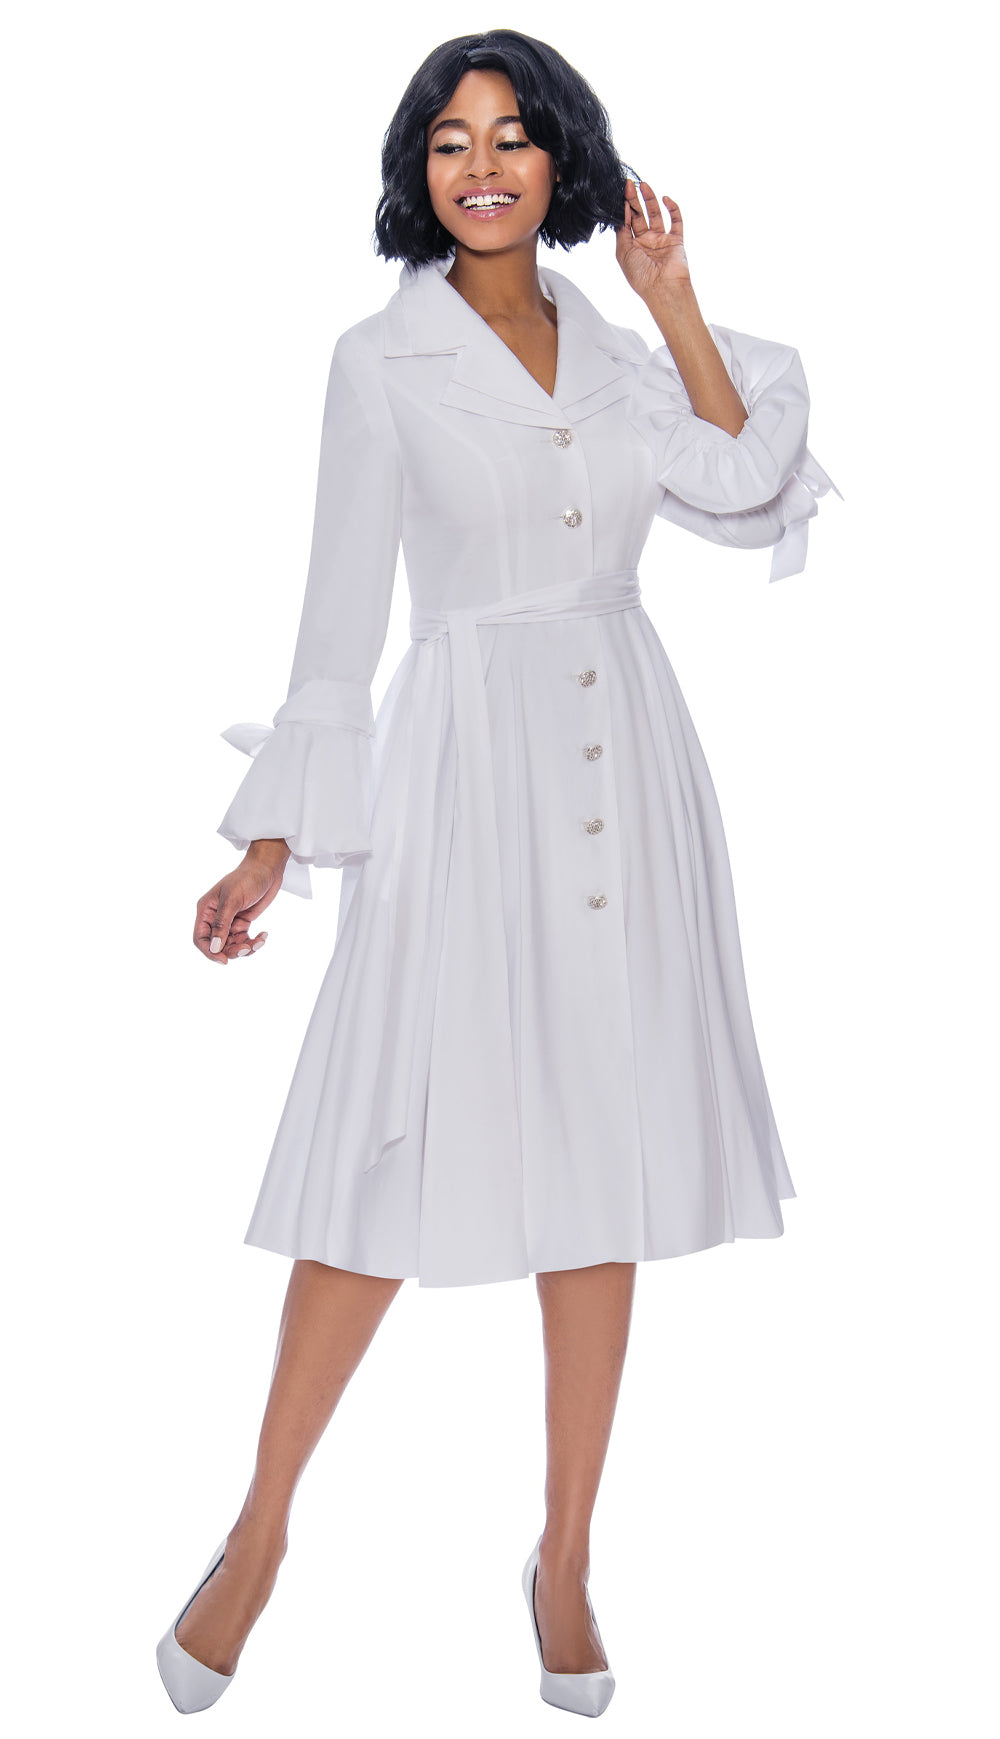 Terramina Dress 7850-White - Church Suits For Less